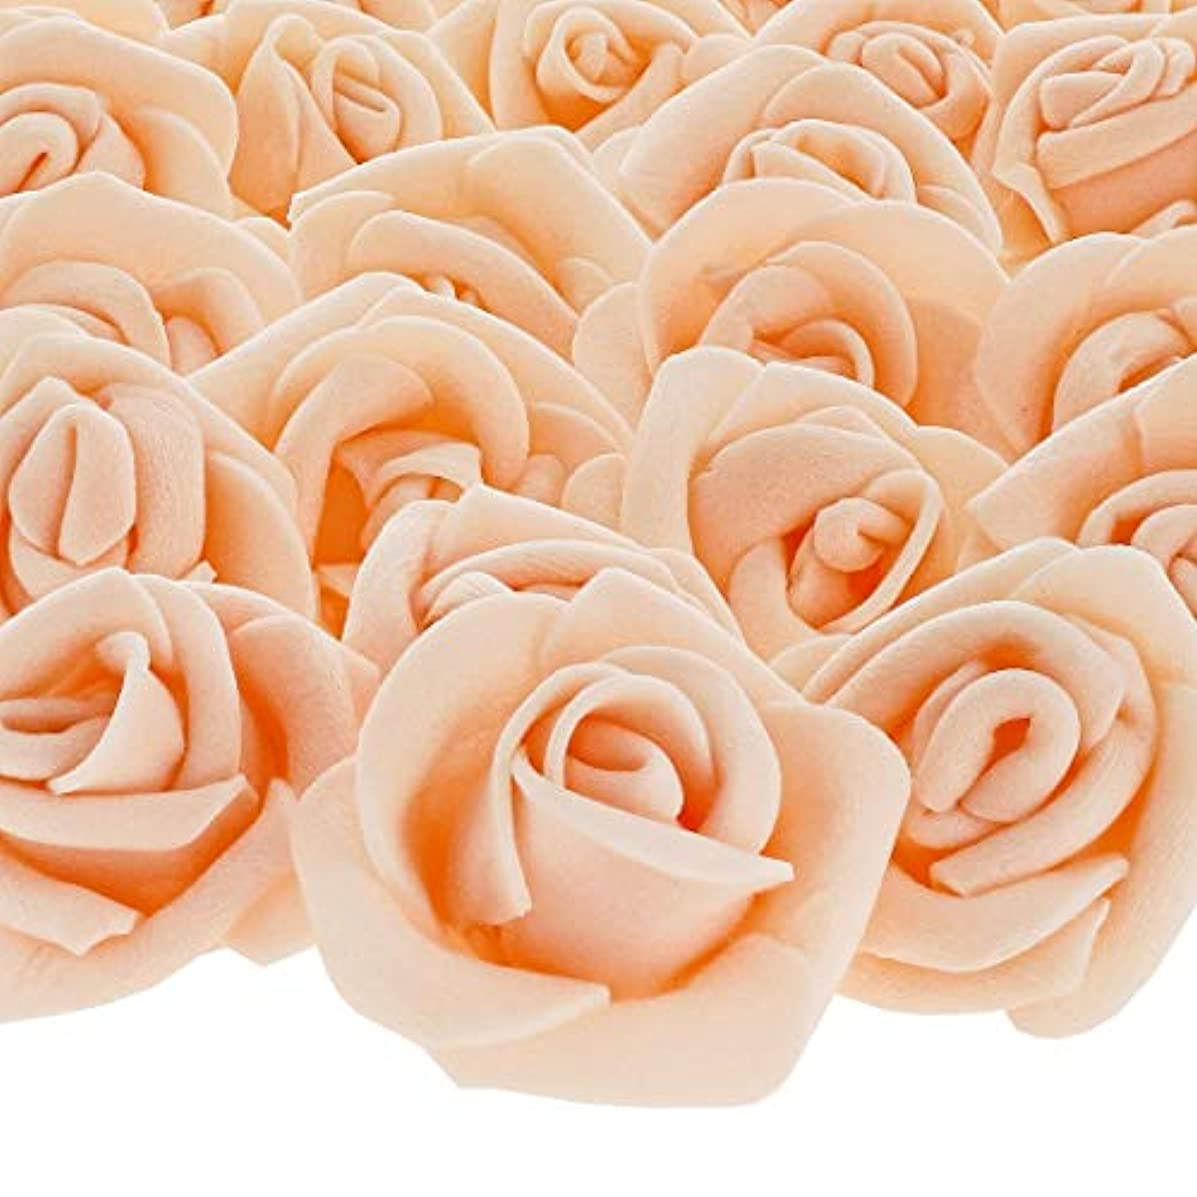 Bright Creations 200-Pack Peach Rose Flower Heads for DIY Crafts, Weddings, Decor, 3 x 2.5 Centimeters